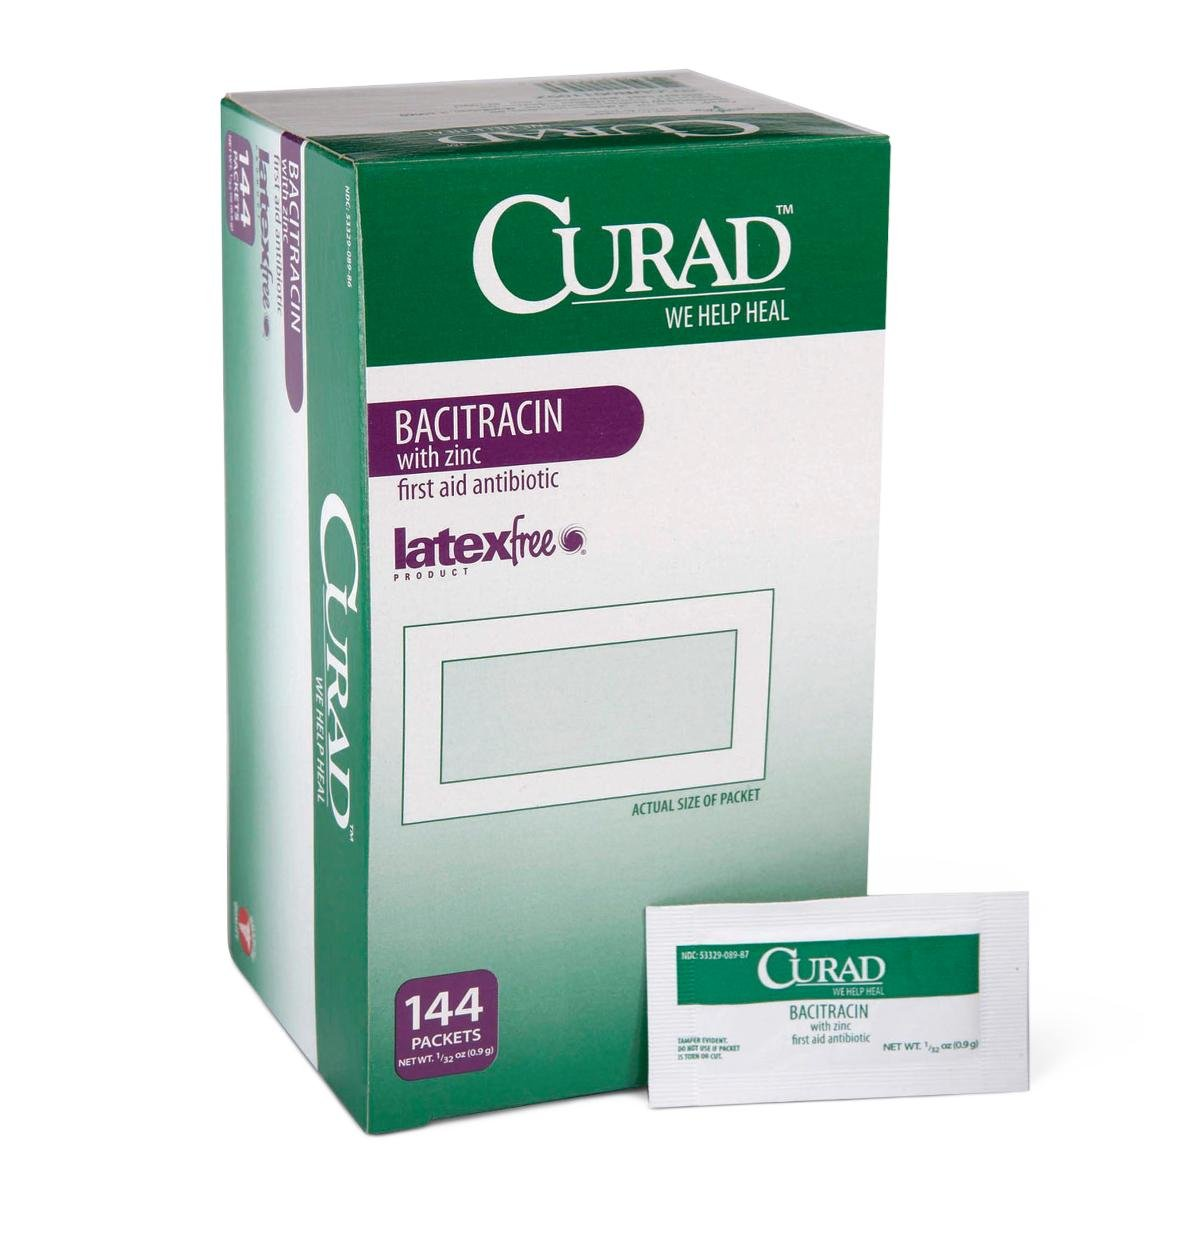 Medline CUR001109 Curad Bacitracin with Zinc Ointment, 0.9 g Packets, 0.03 oz (Pack of 1728) by Medline